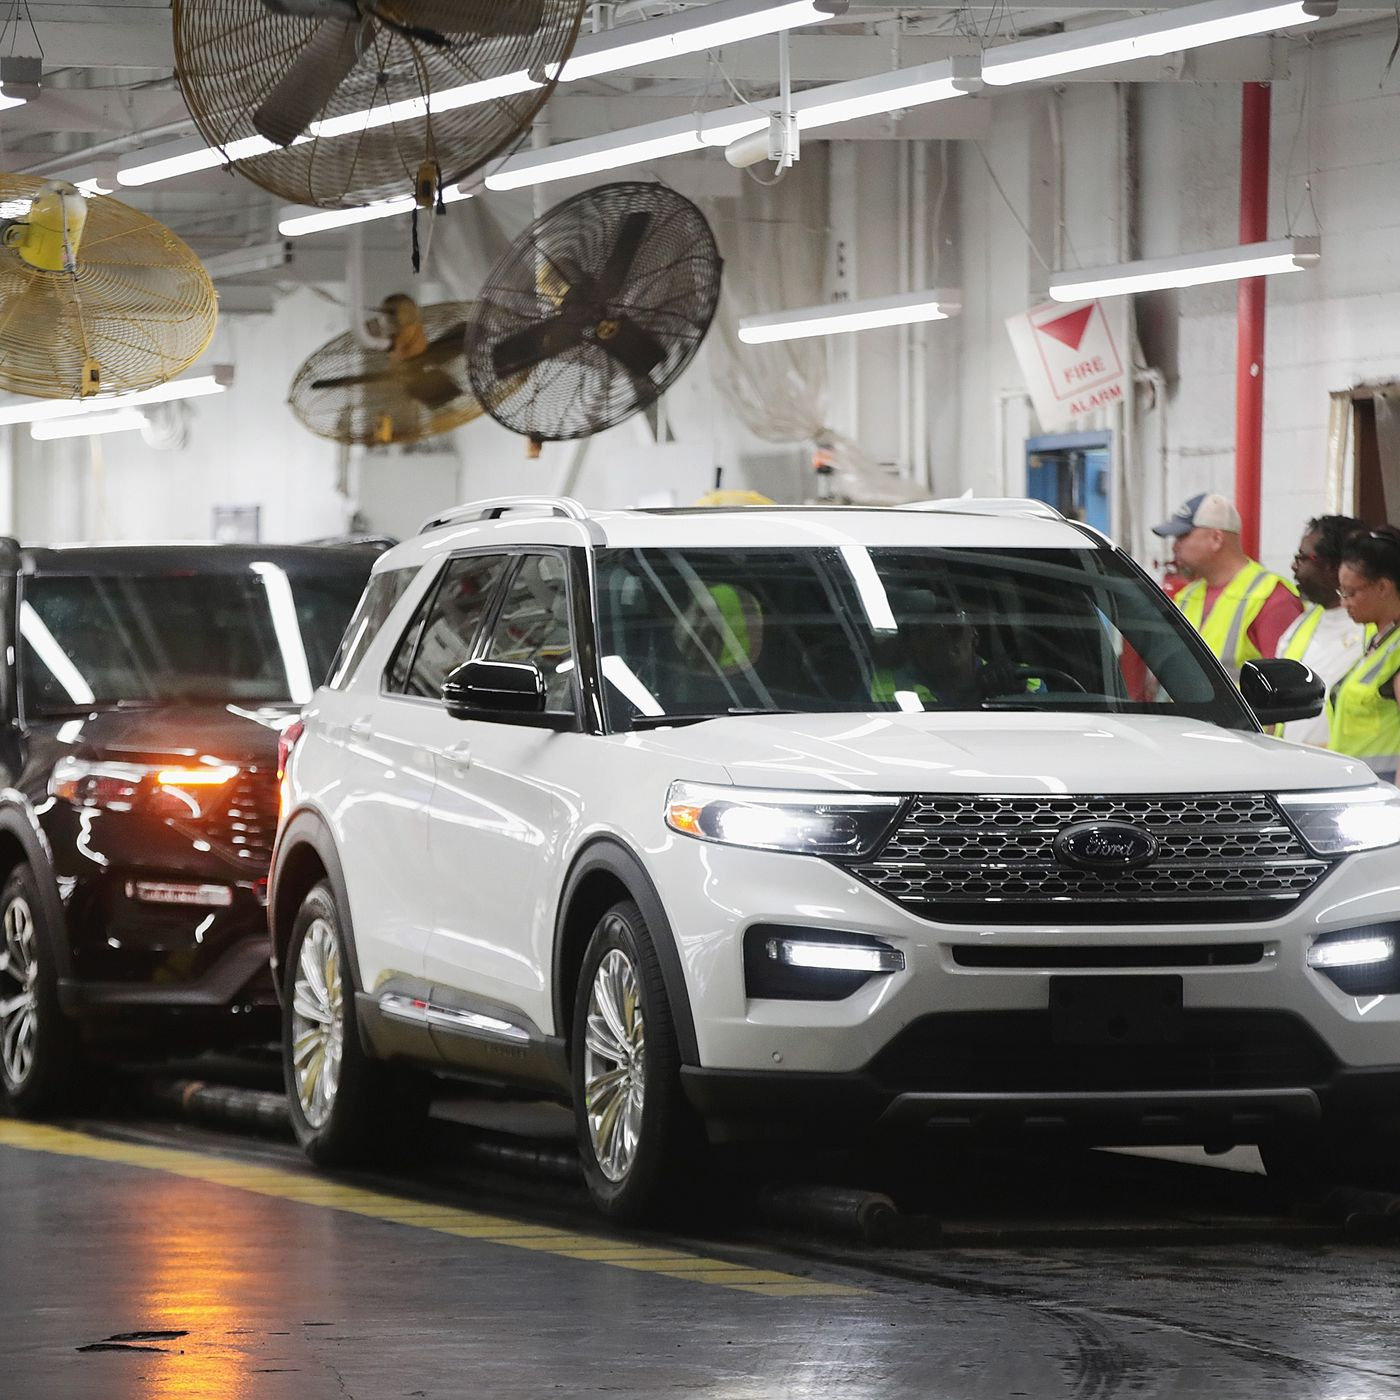 ford gm fiat chrysler join honda in closing us factories to slow pandemic the verge ford gm fiat chrysler join honda in